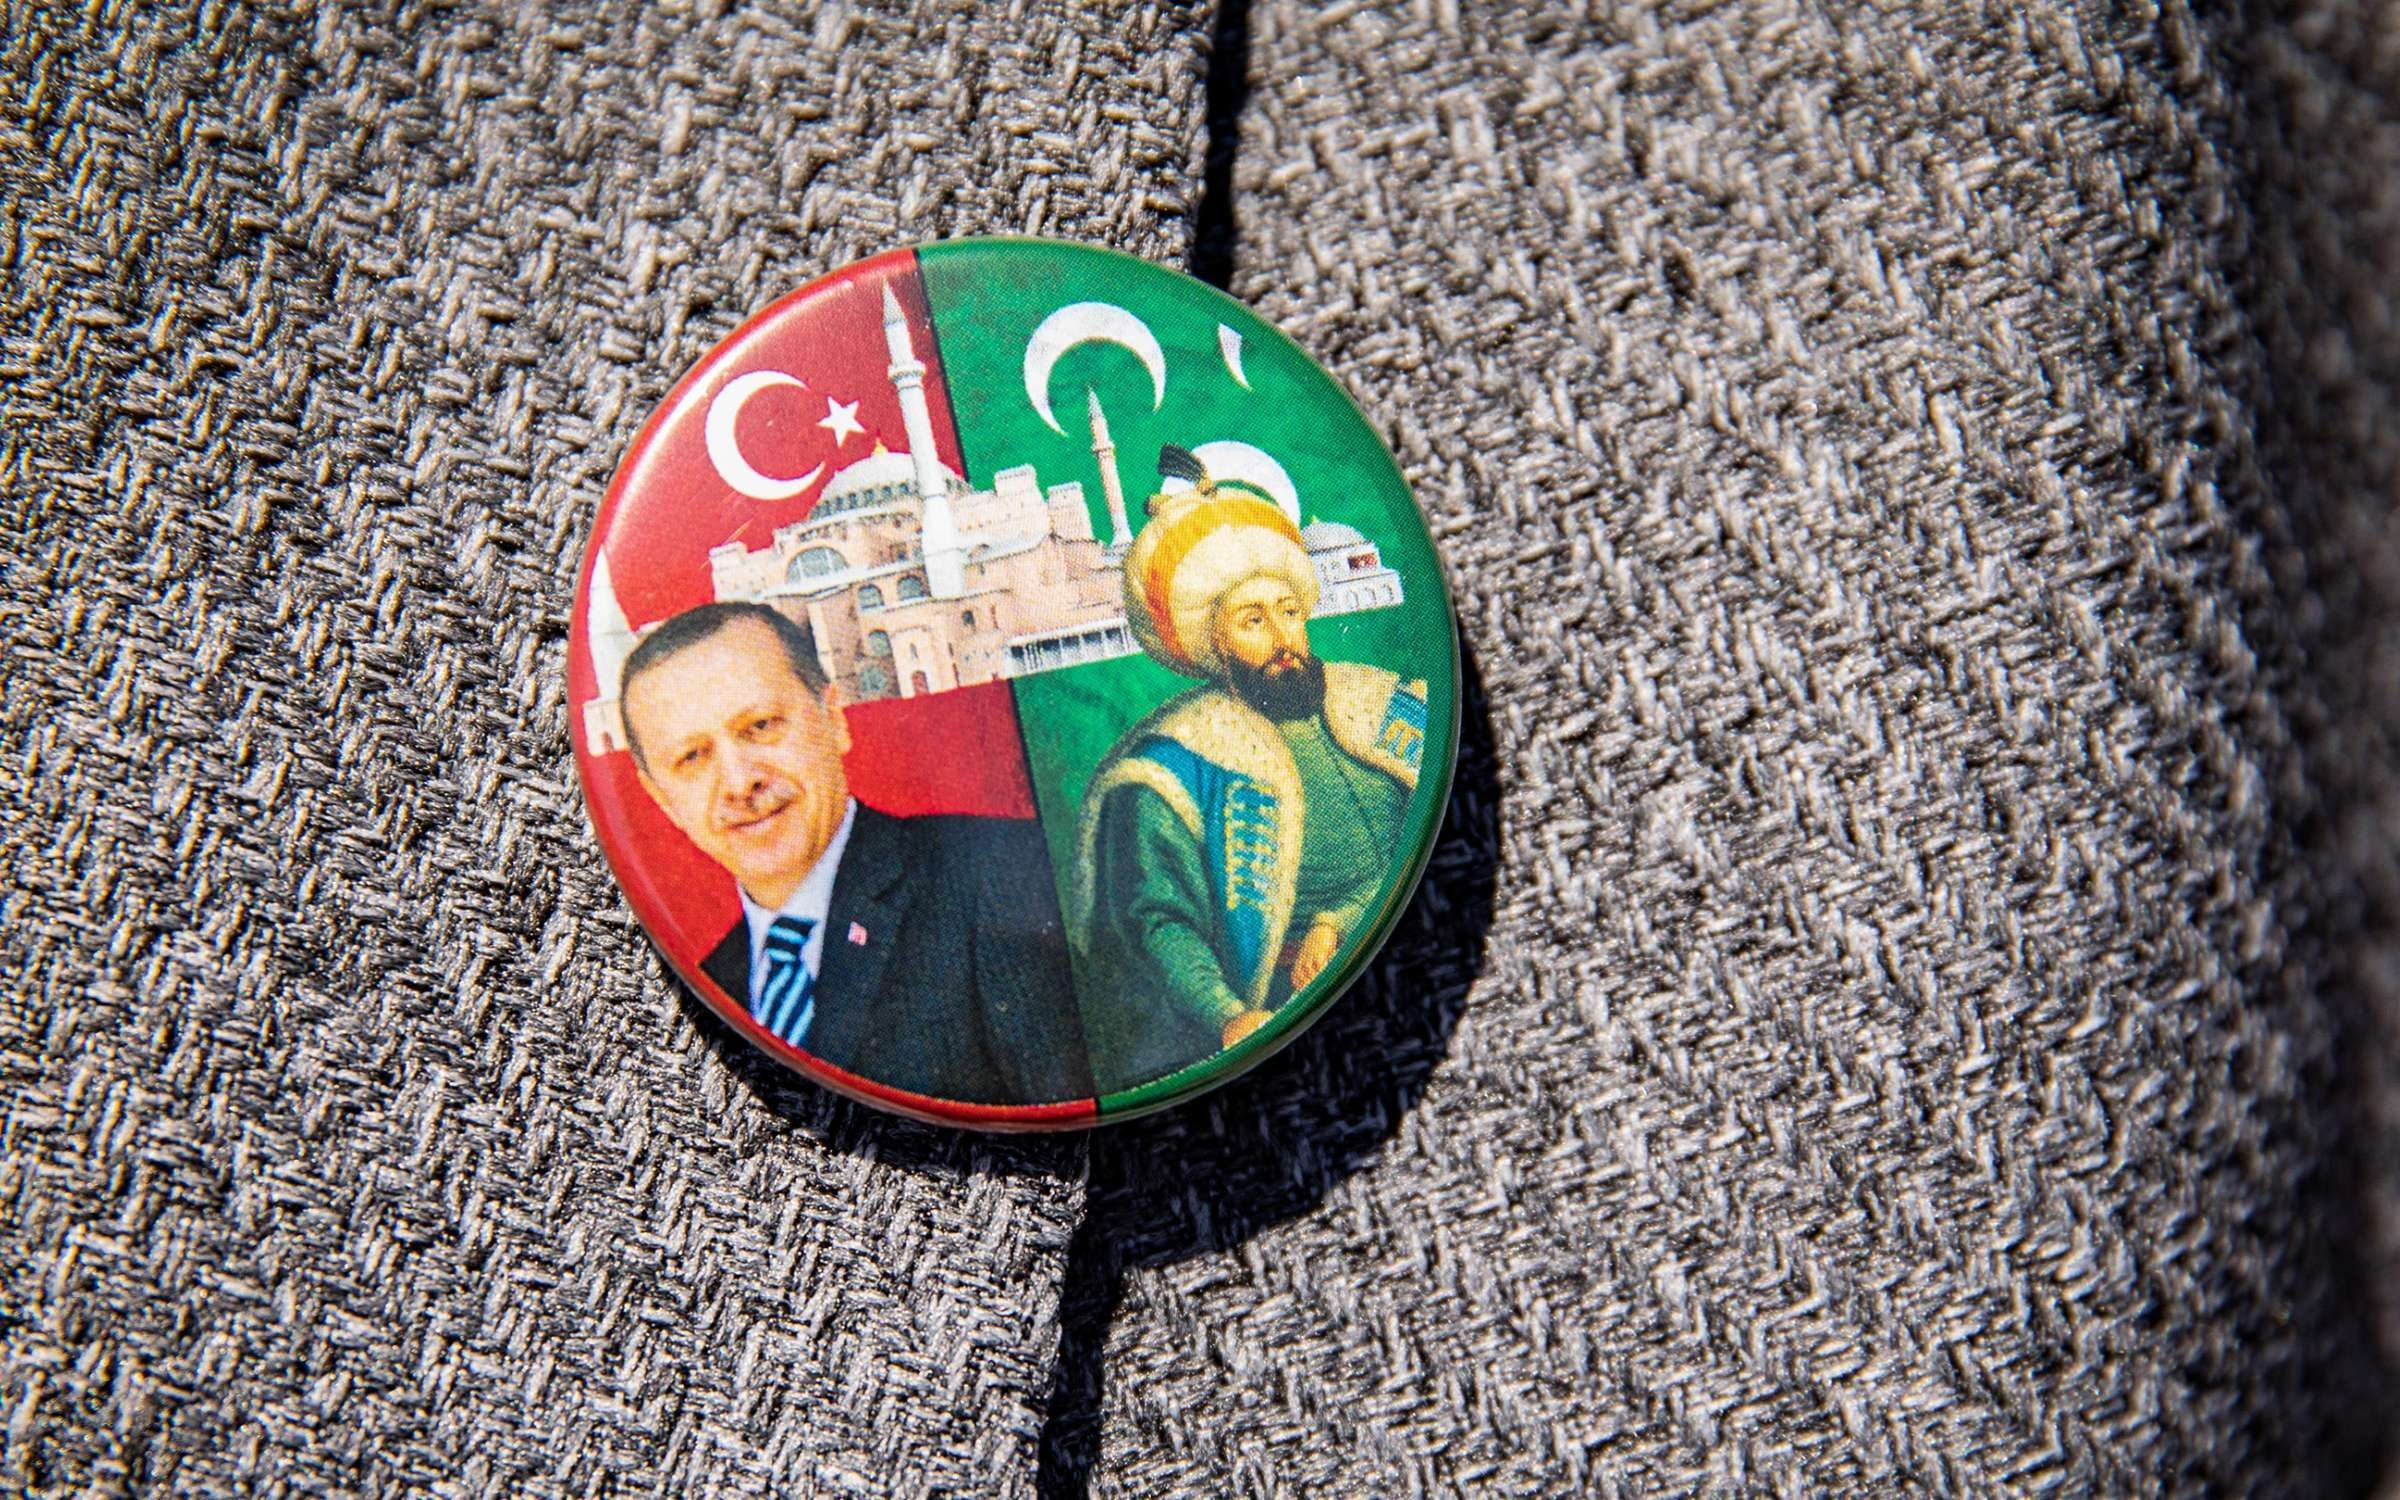 An attendee wears a badge depicting Recep Tayyip Erdogan, Turkey's president during the opening ceremony to mark the first day of prayers at the Hagia Sophia mosque. Credit: Kerem Uzel / Bloomberg via Getty Images.